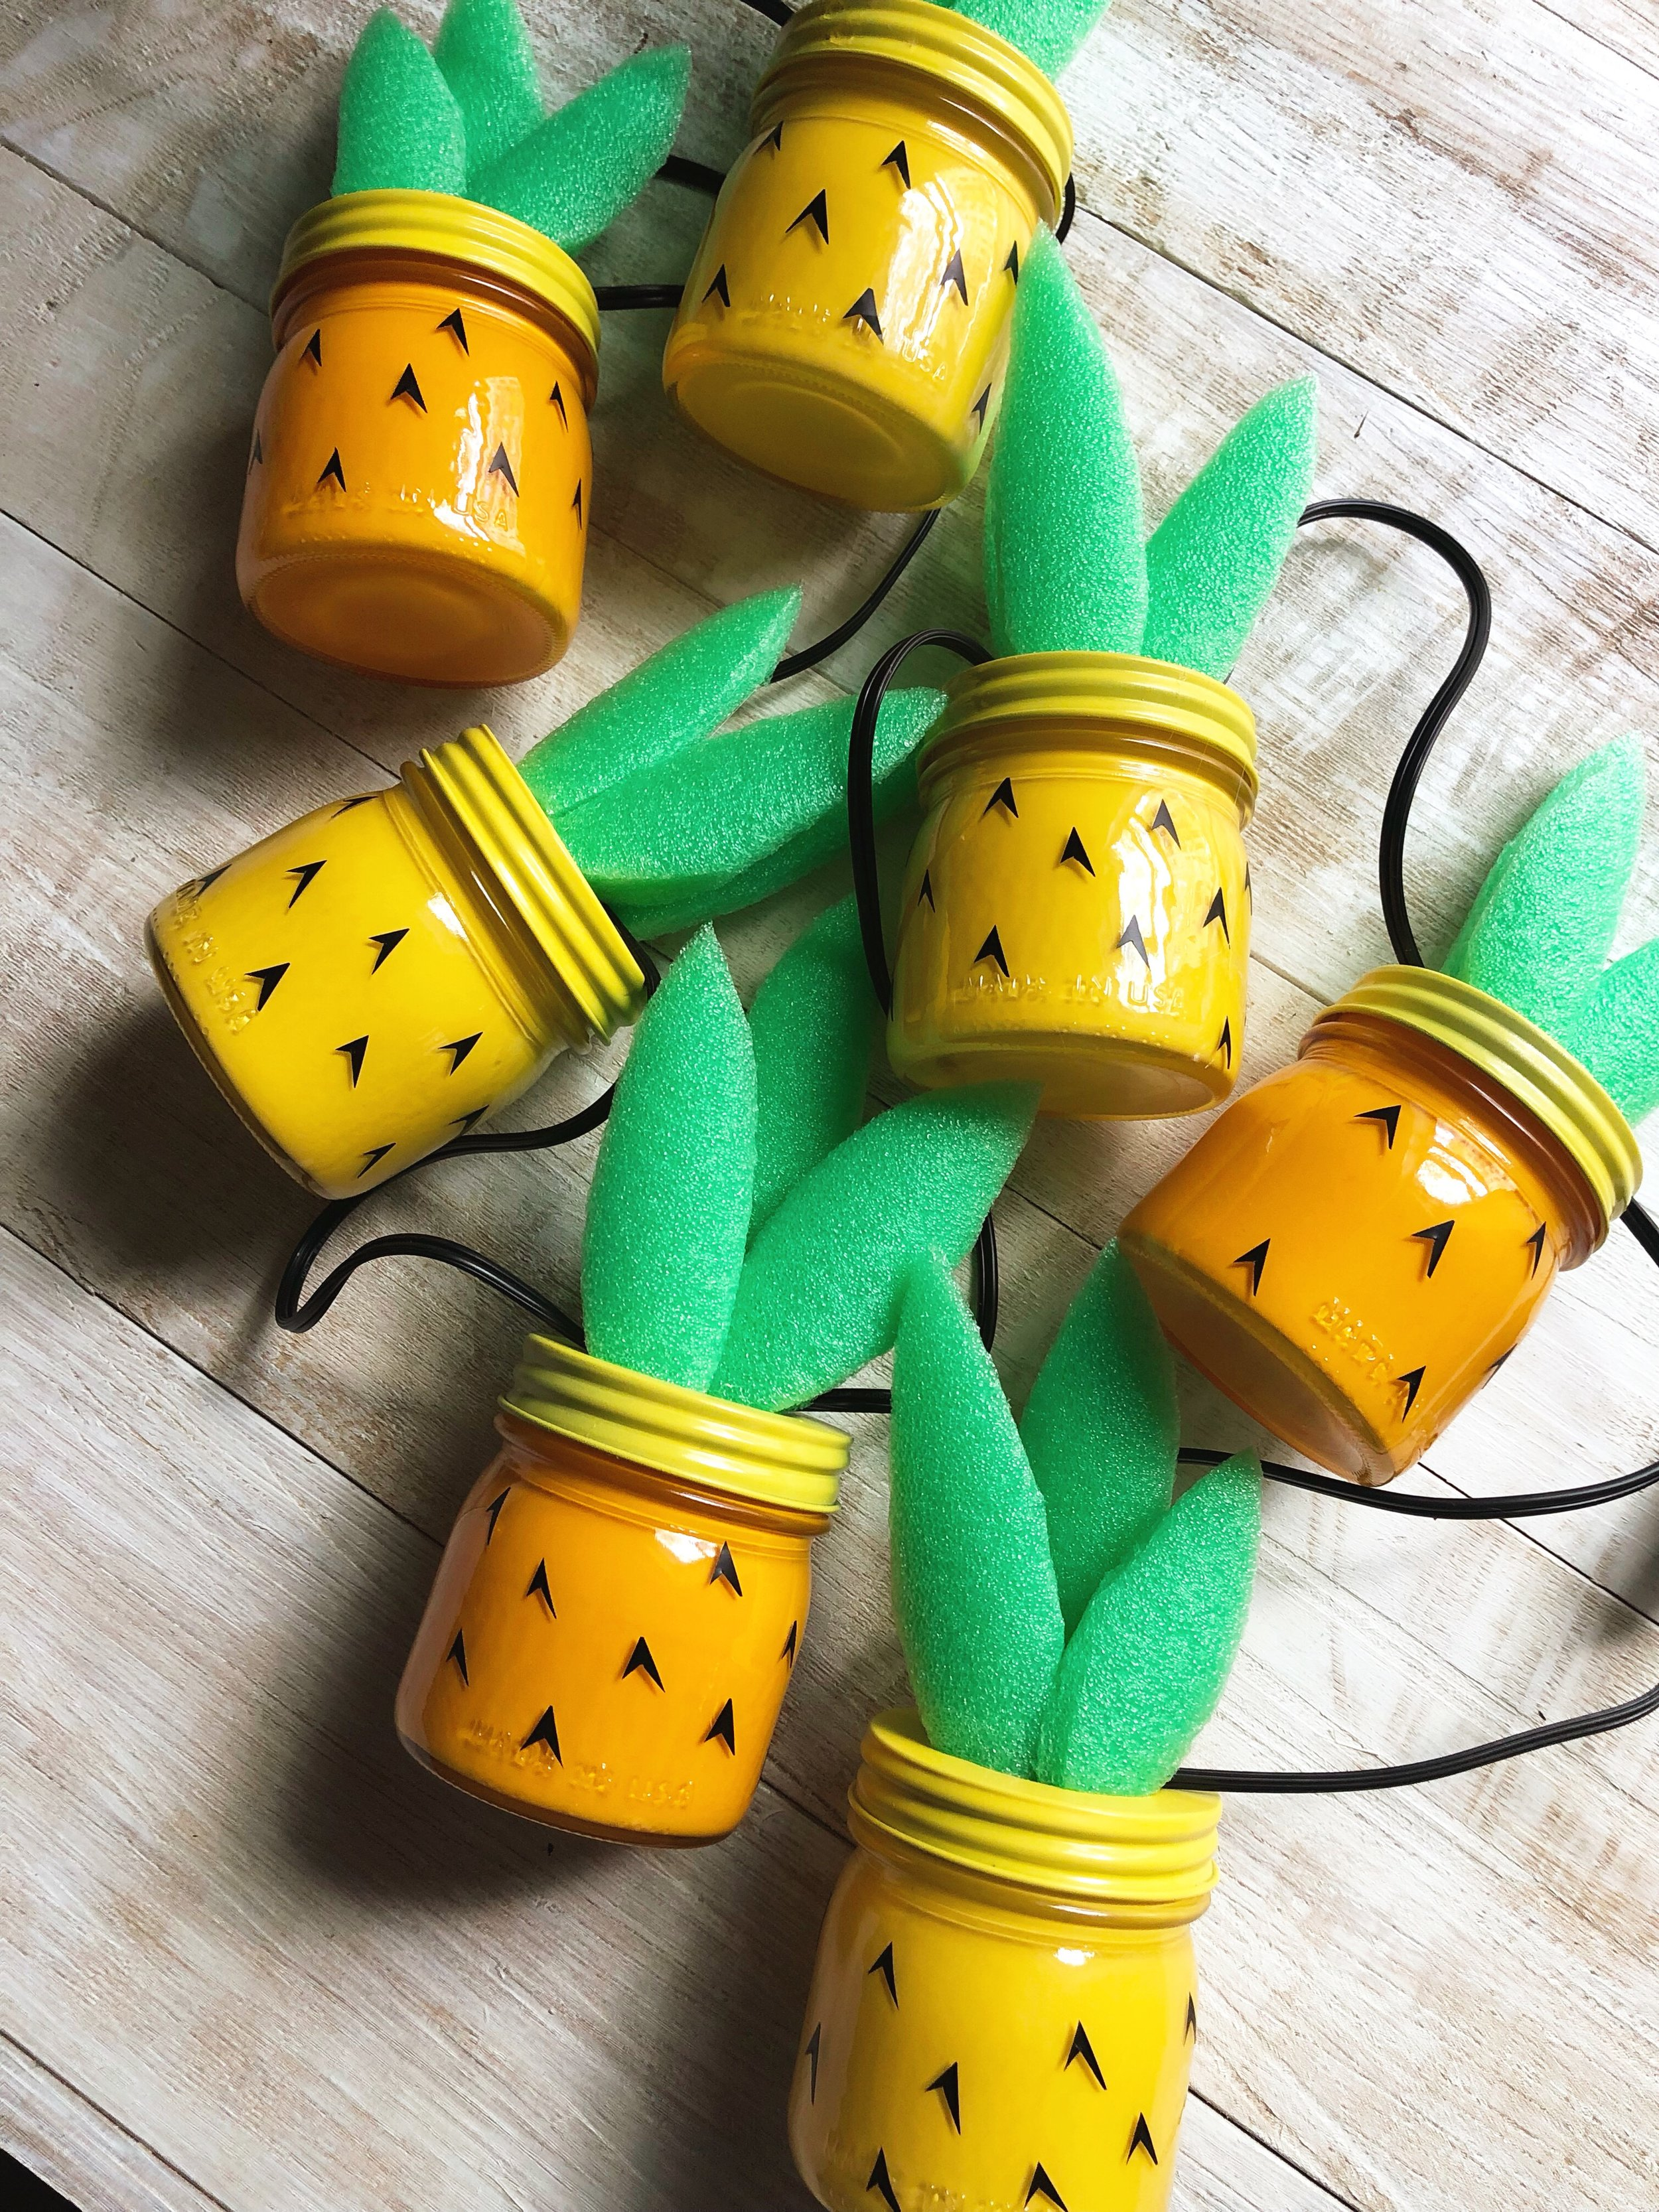 DIY Pineapple Jar String Lights! Use mini @Ballcanning jars to create a tiki inspired strand of pineapple lights! Summertime and the crafting is easy! @MichaelsStores #Balljars #masonjars #pinapple #pineapplecraft #tiki #tikilights #tikicraft #barcraft #summerdiy #summercraft #pooldecor #poolnoodlecraft #poolnoodle #Acrylicpaint #Tropicalcraft #tropicallights #summerlights #madewithmichaels #michaels